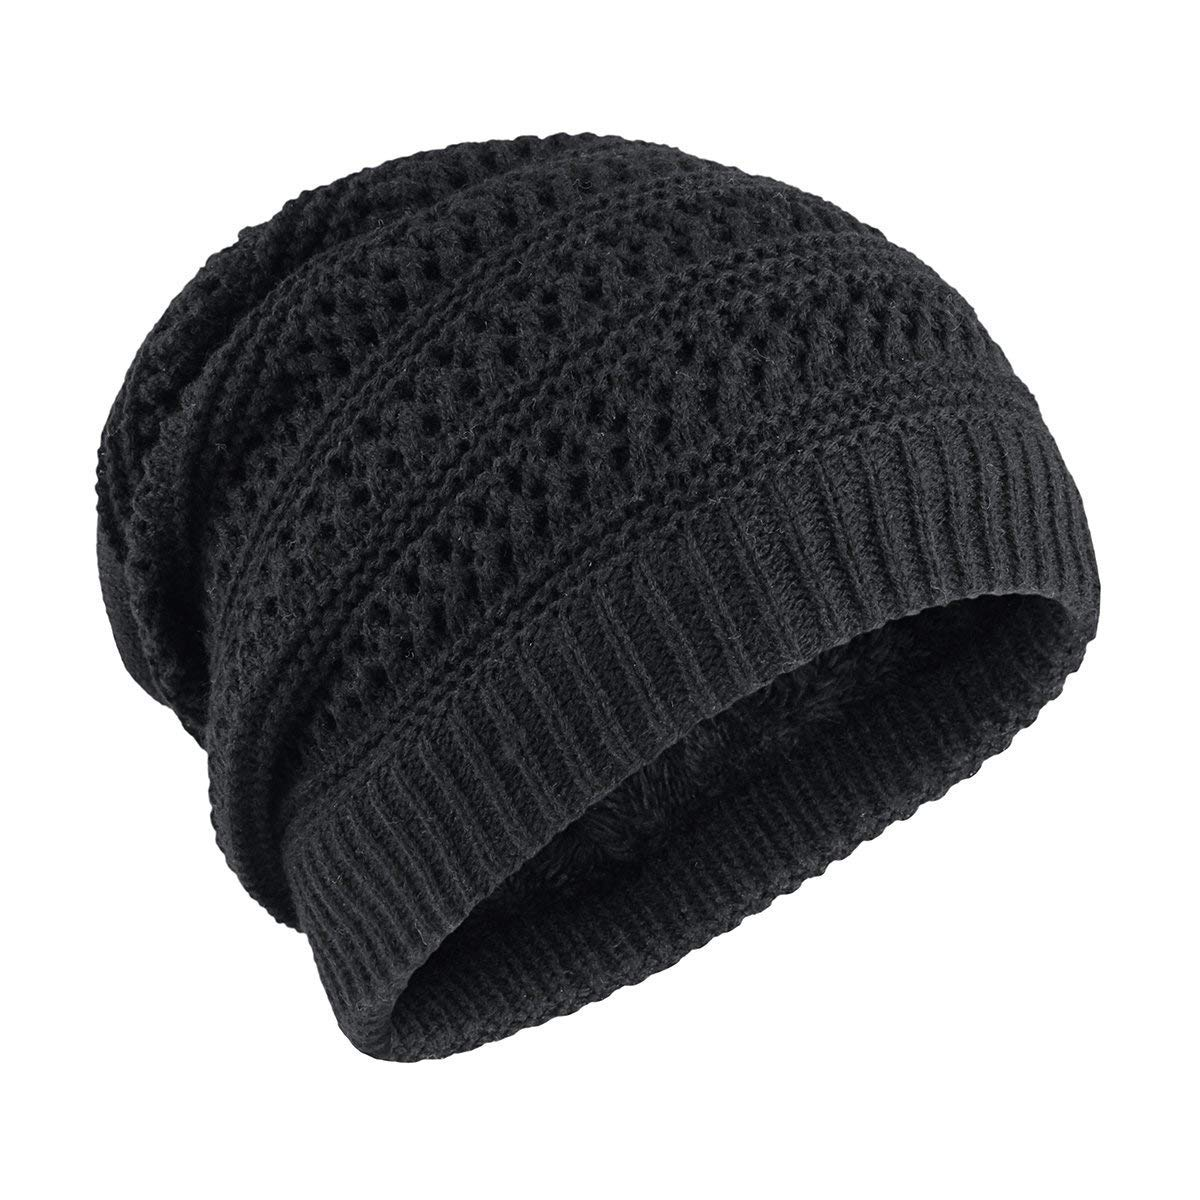 d05b6a89d1b OMECHY Slouchy Beanie Hats Unisex Daily Knit Skull Cap Winter Warm Fleece  Soft Baggy Hat Ski Cap